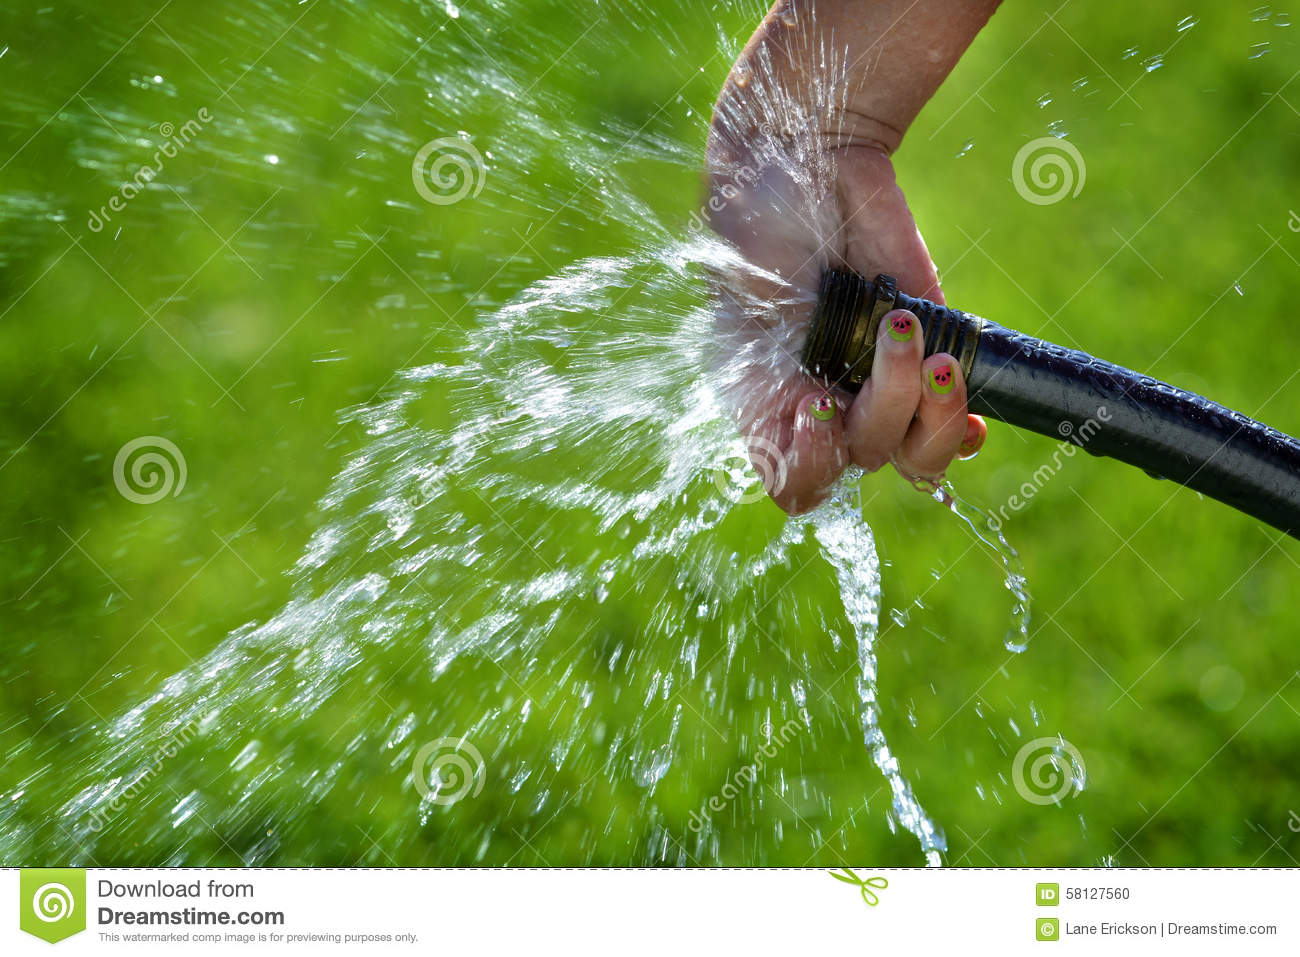 How To Run Plumbing Hand And Hose Squirting Fresh Water On Grass Stock Photo